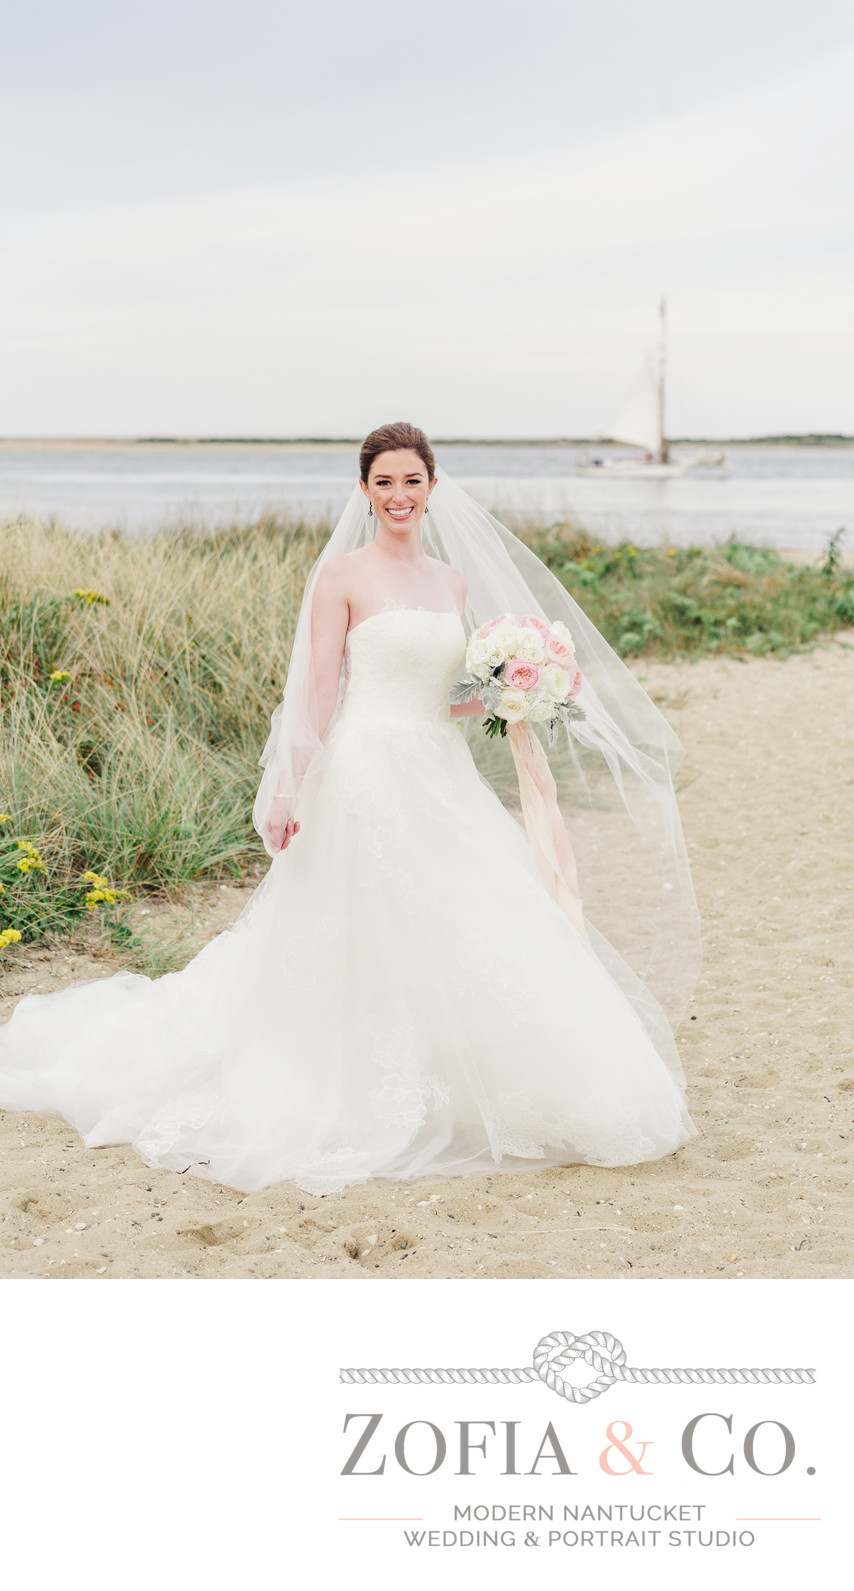 brant point bride with veil and sailboat